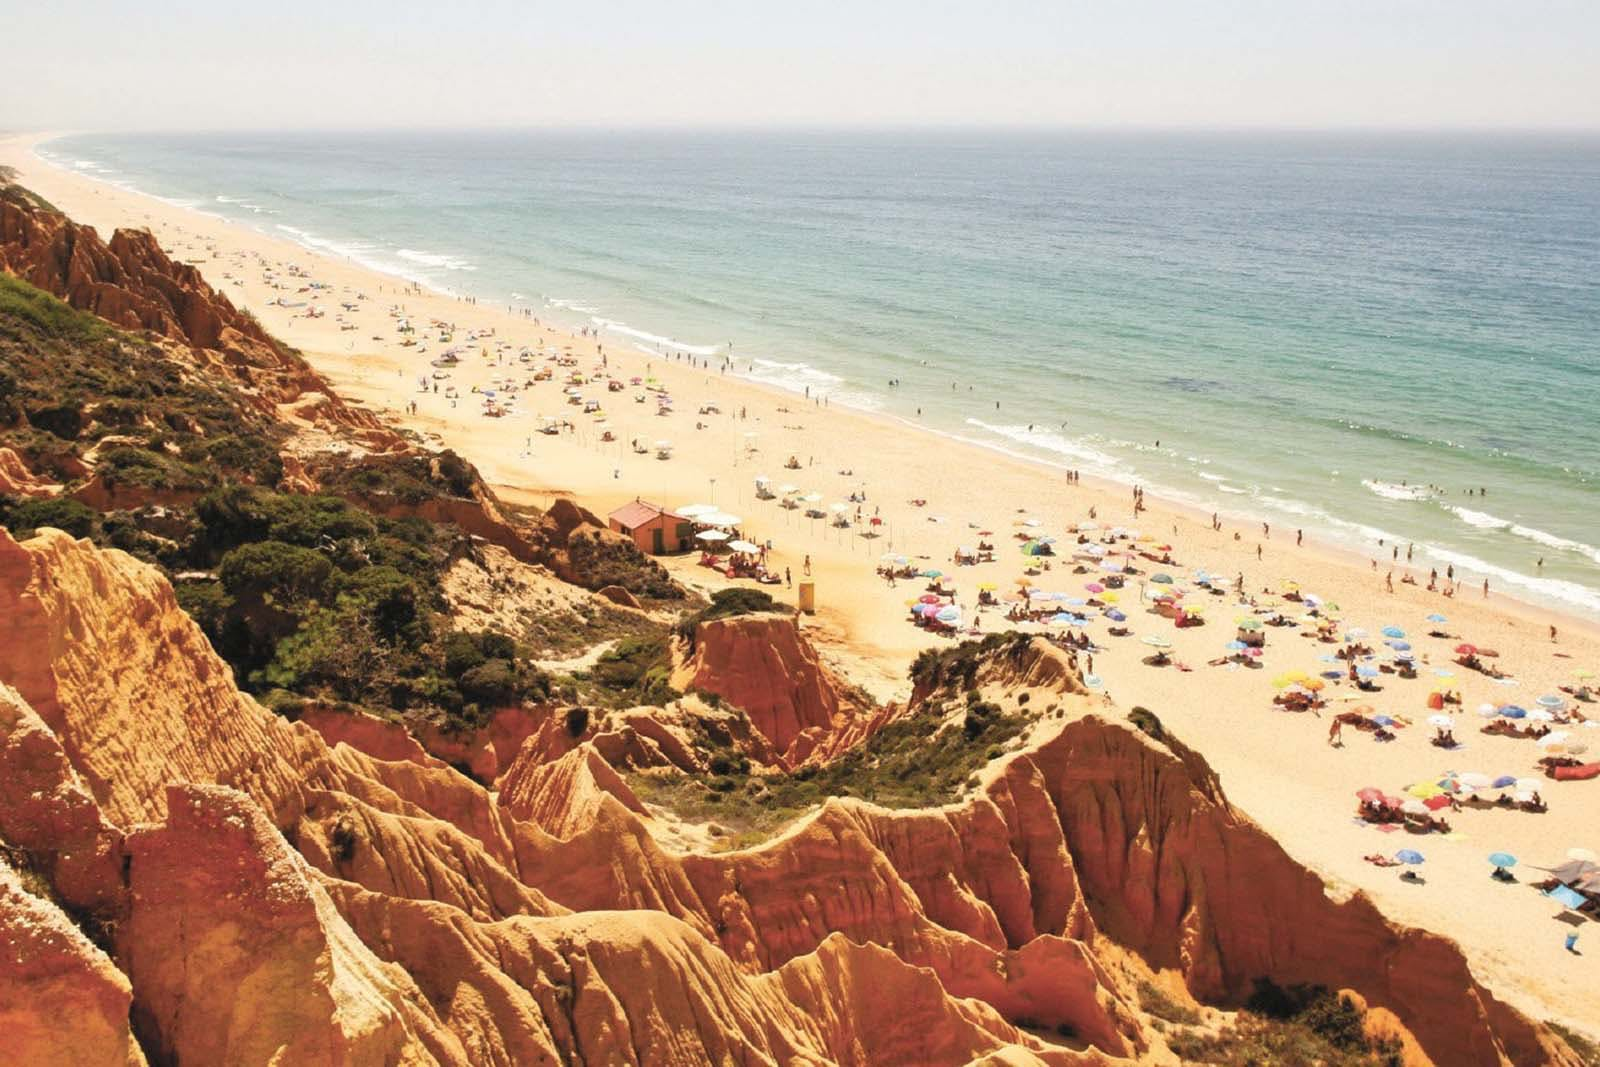 Praia da Gale with a view of the orange cliffs and the Atlantic coast near a campground.